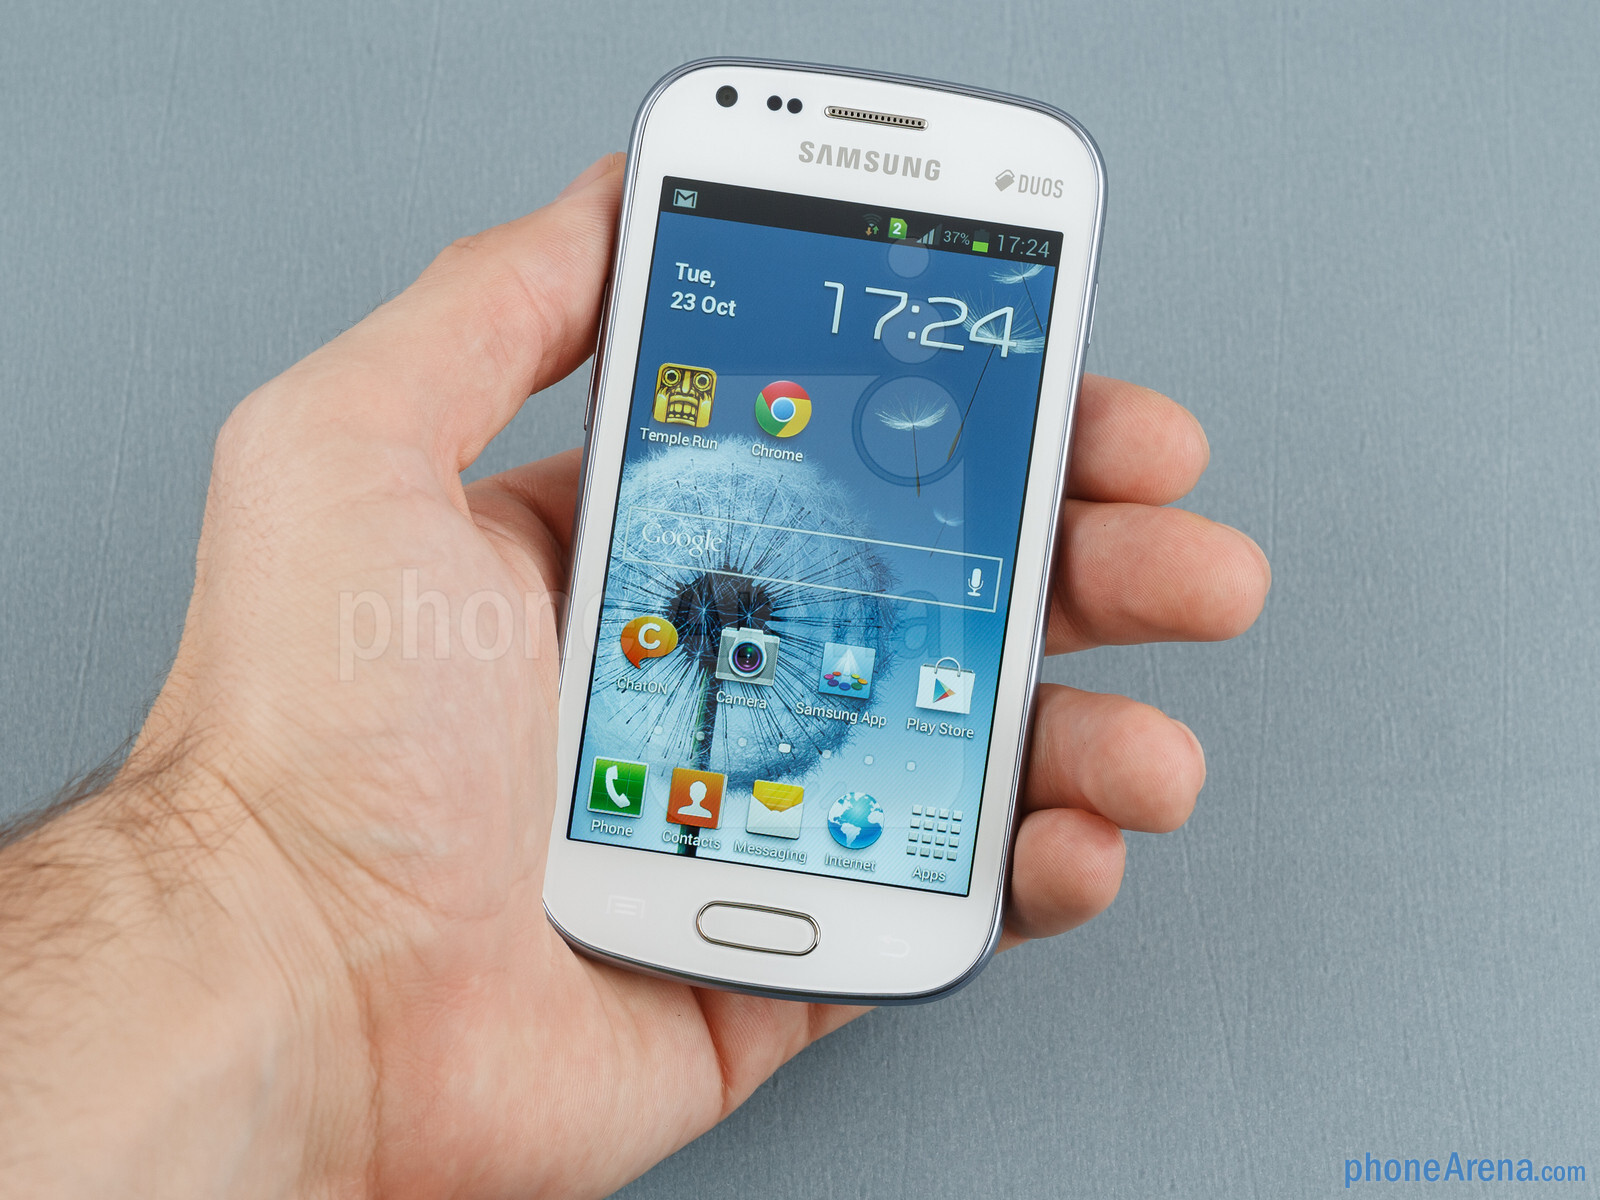 Samsung Galaxy S Duos S7562 Price In Malaysia